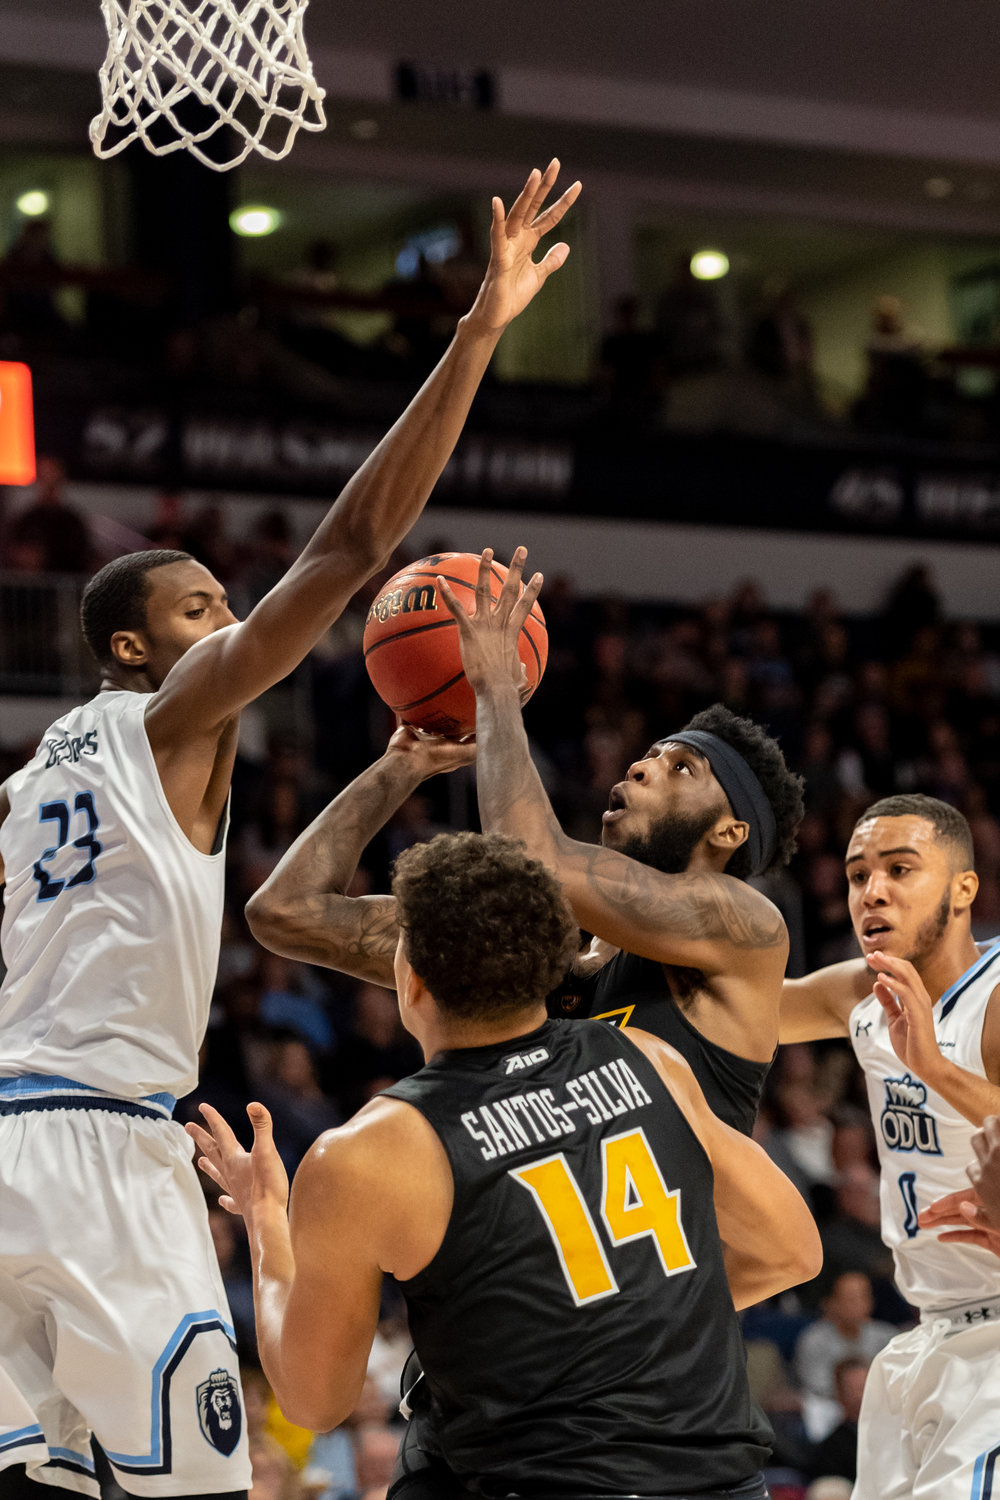 Virginia Commonwealth Rams forward Issac Vann (23) goes up for a shot under pressure from Old Dominion Monarchs forward Dajour Dickens (23) during the Wednesday, November 28, 2018 game held at Old Dominion University in Norfolk. Old Dominion defeated VCU 62 to 52.